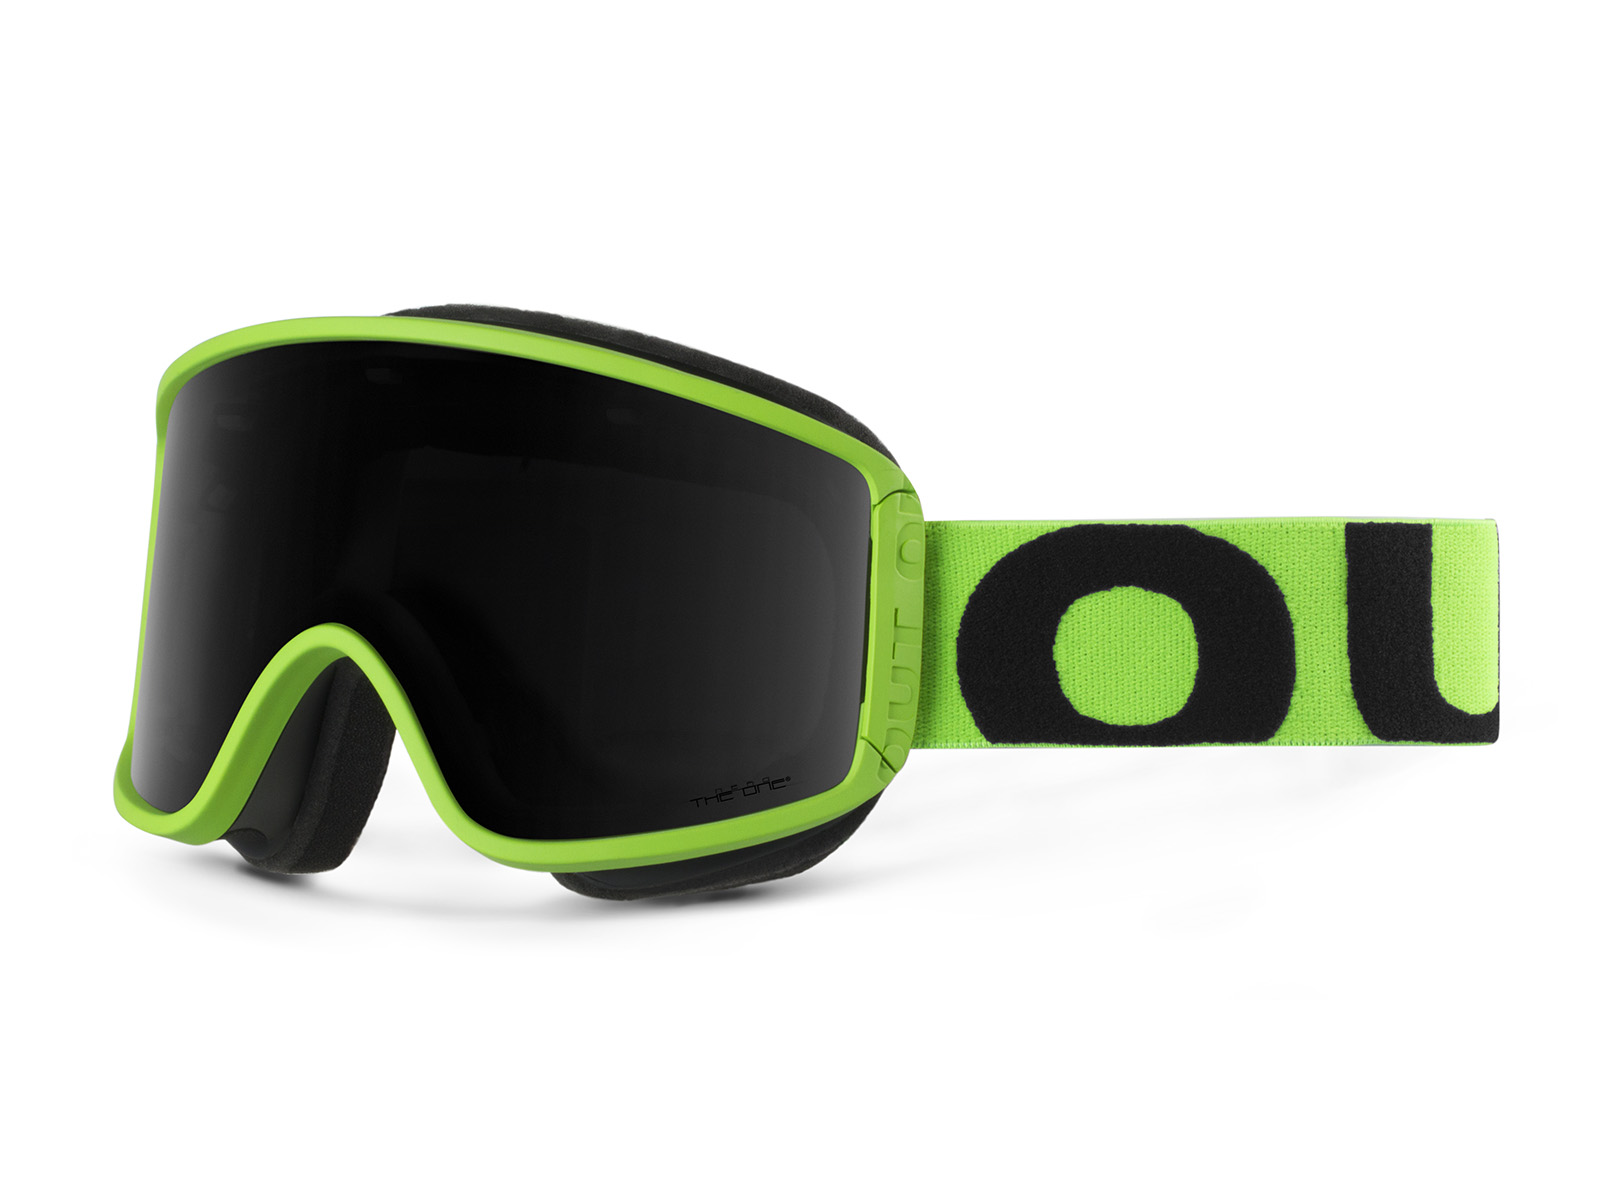 MASCHERA SHIFT FLUO GREEN THE ONE NERO